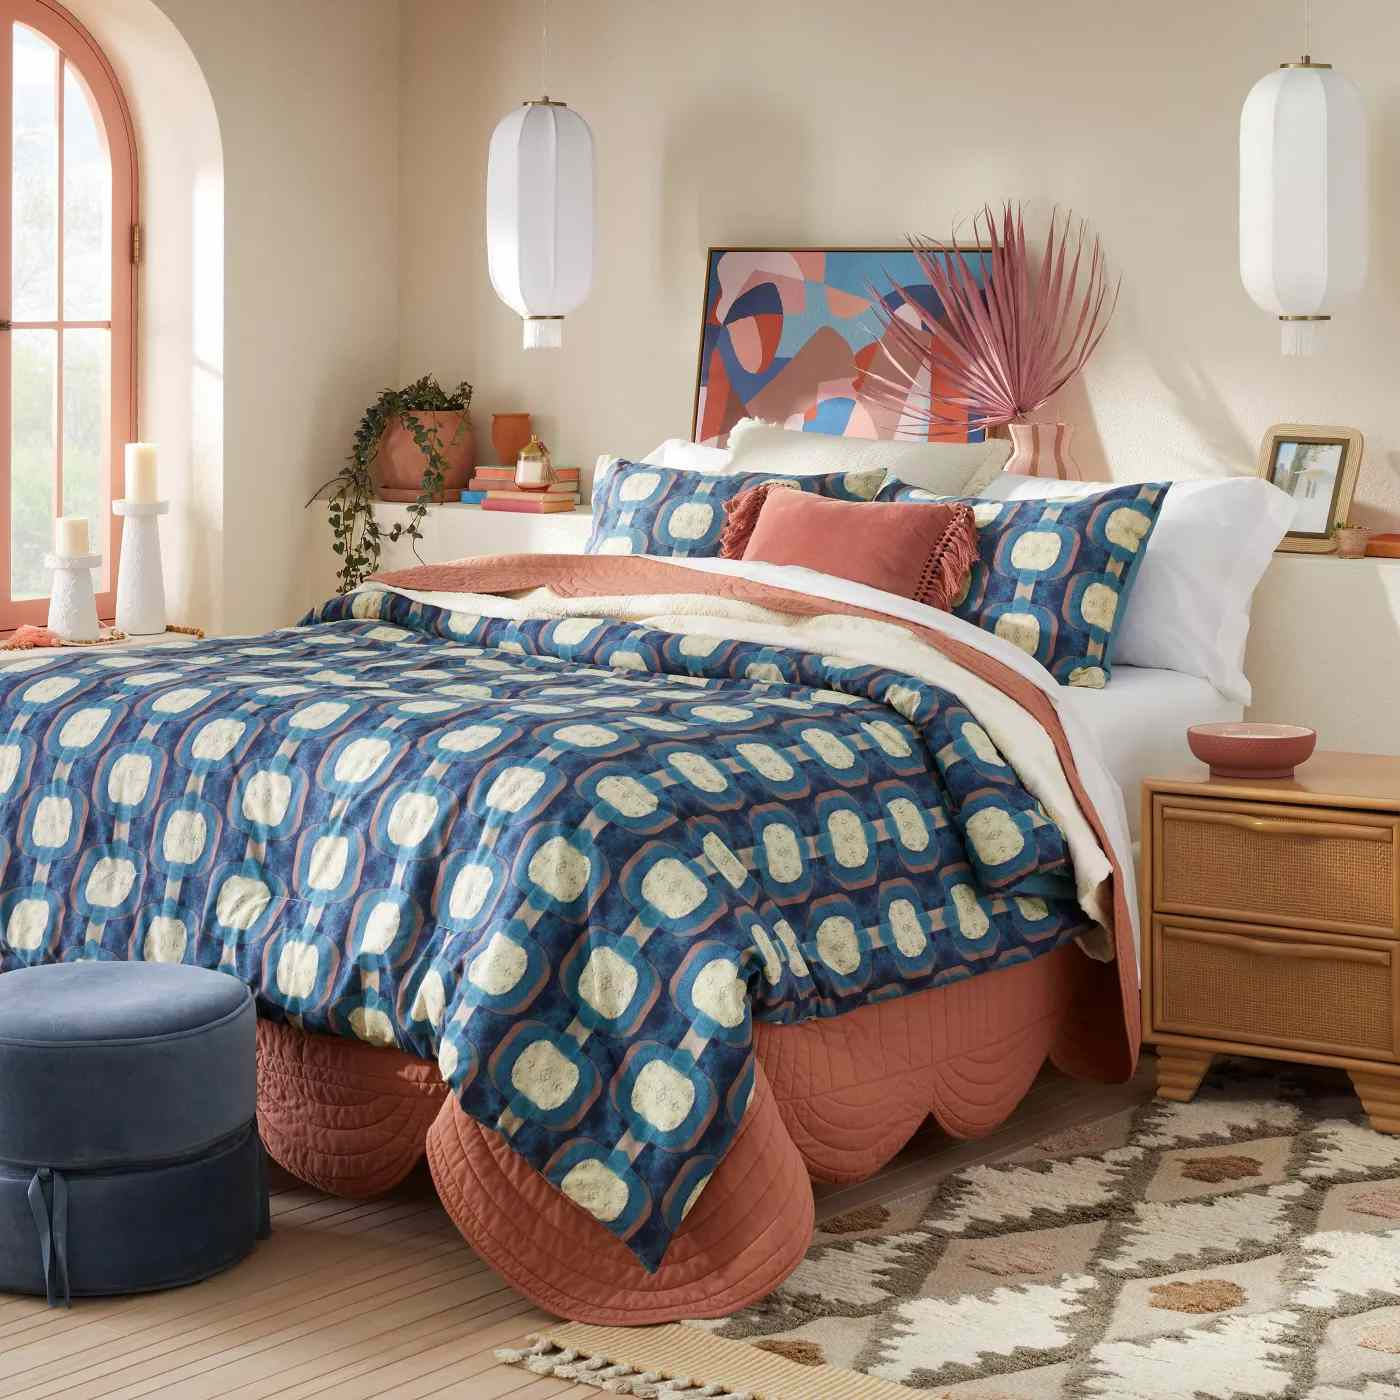 Scalloped Edge Quilt on bed.